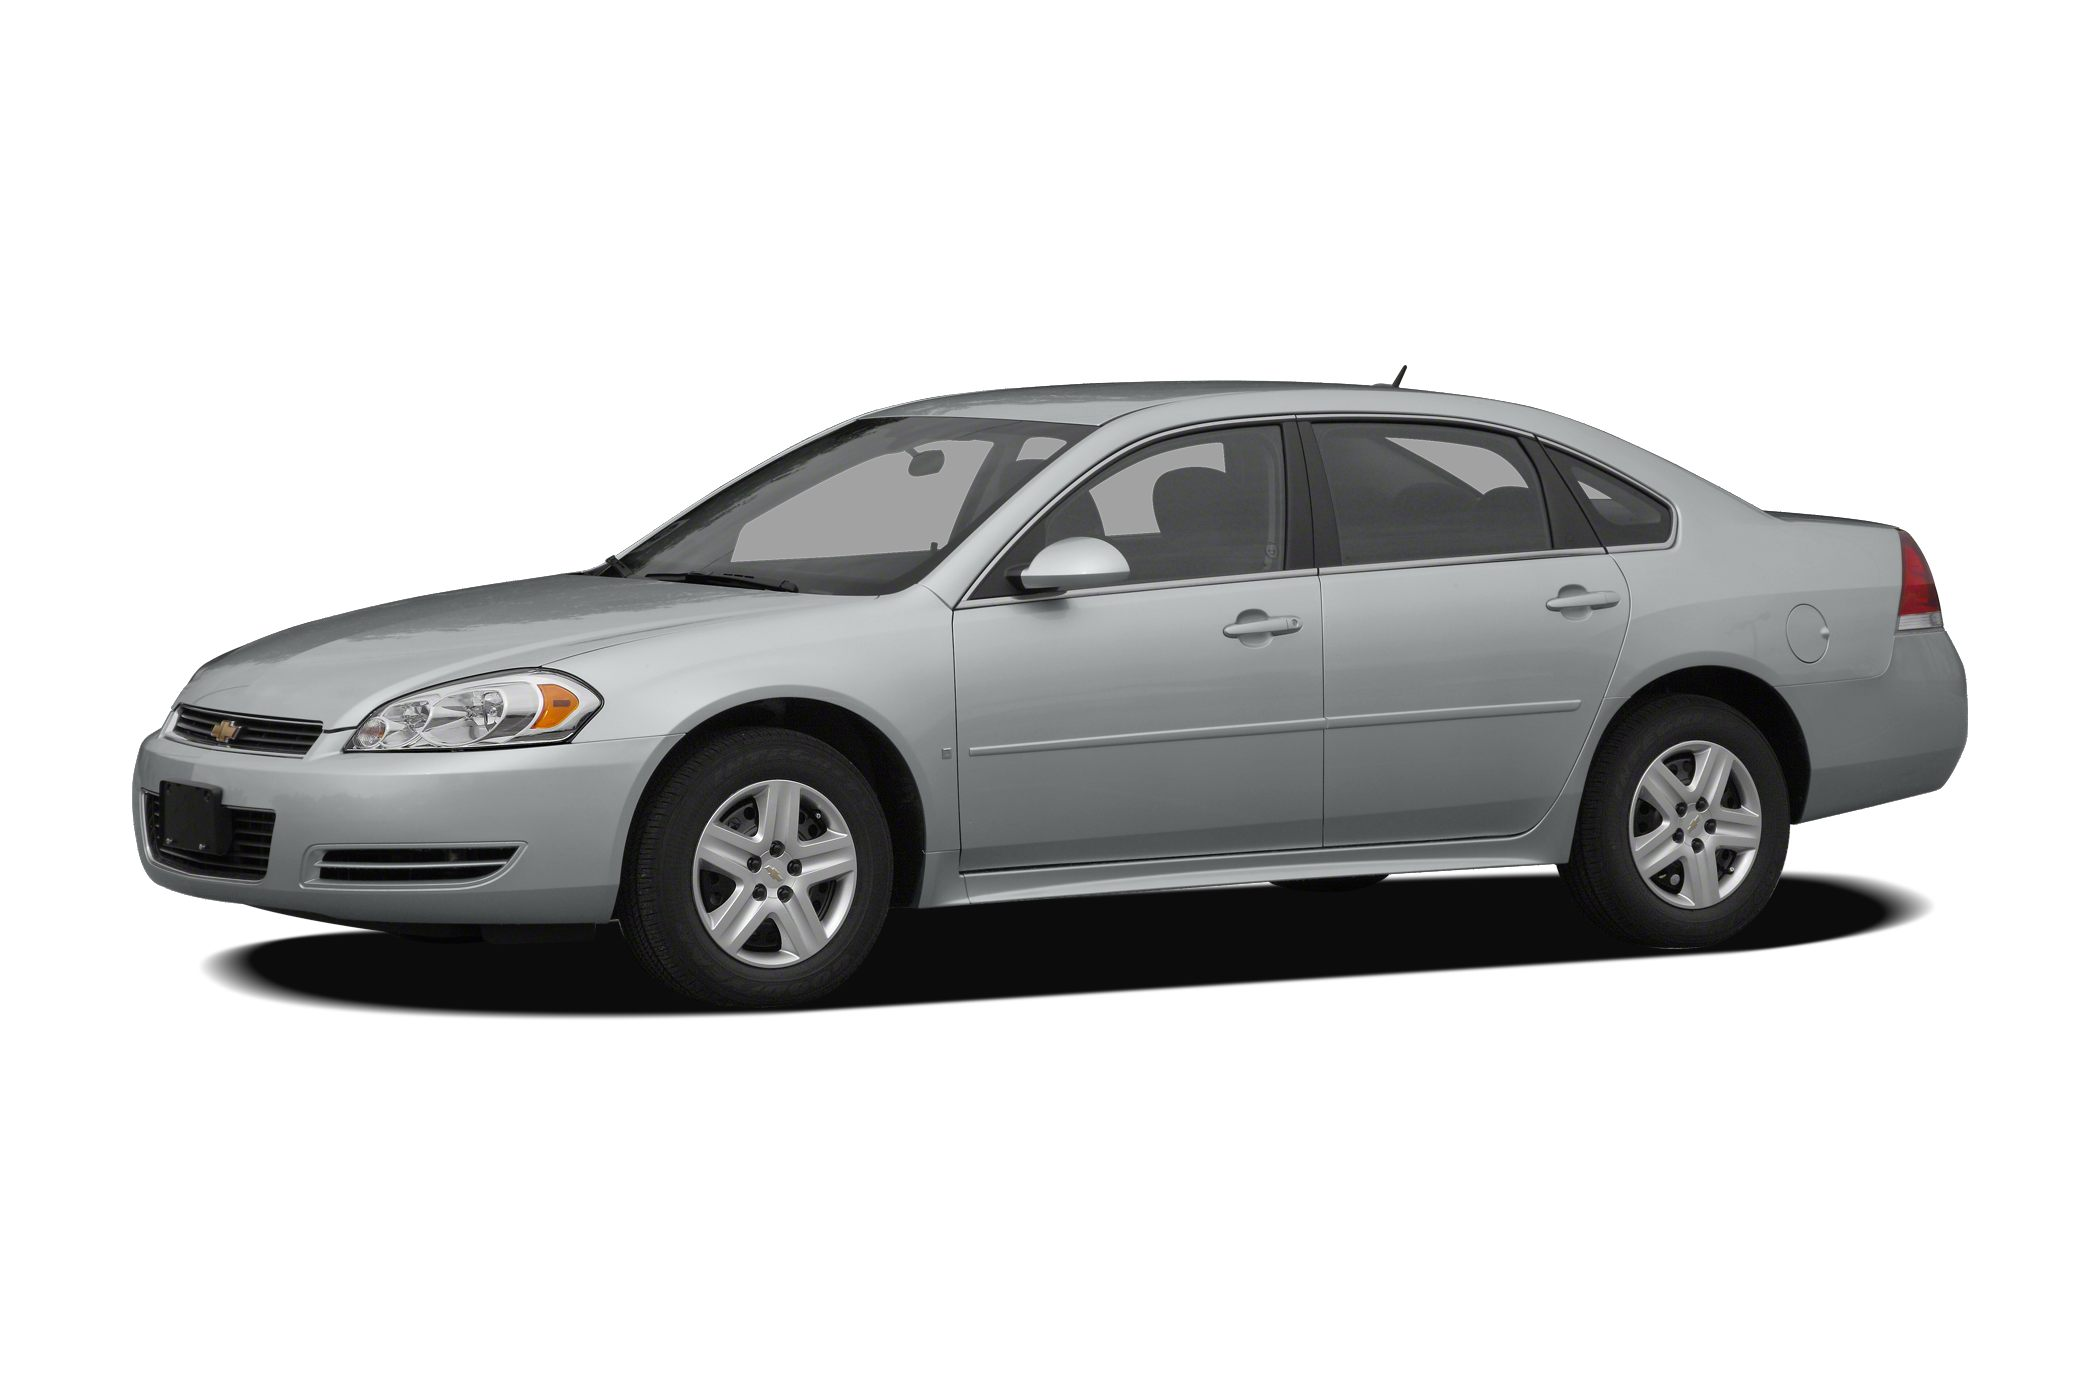 2011 Chevrolet Impala LT Sedan for sale in Toccoa for $7,875 with 131,015 miles